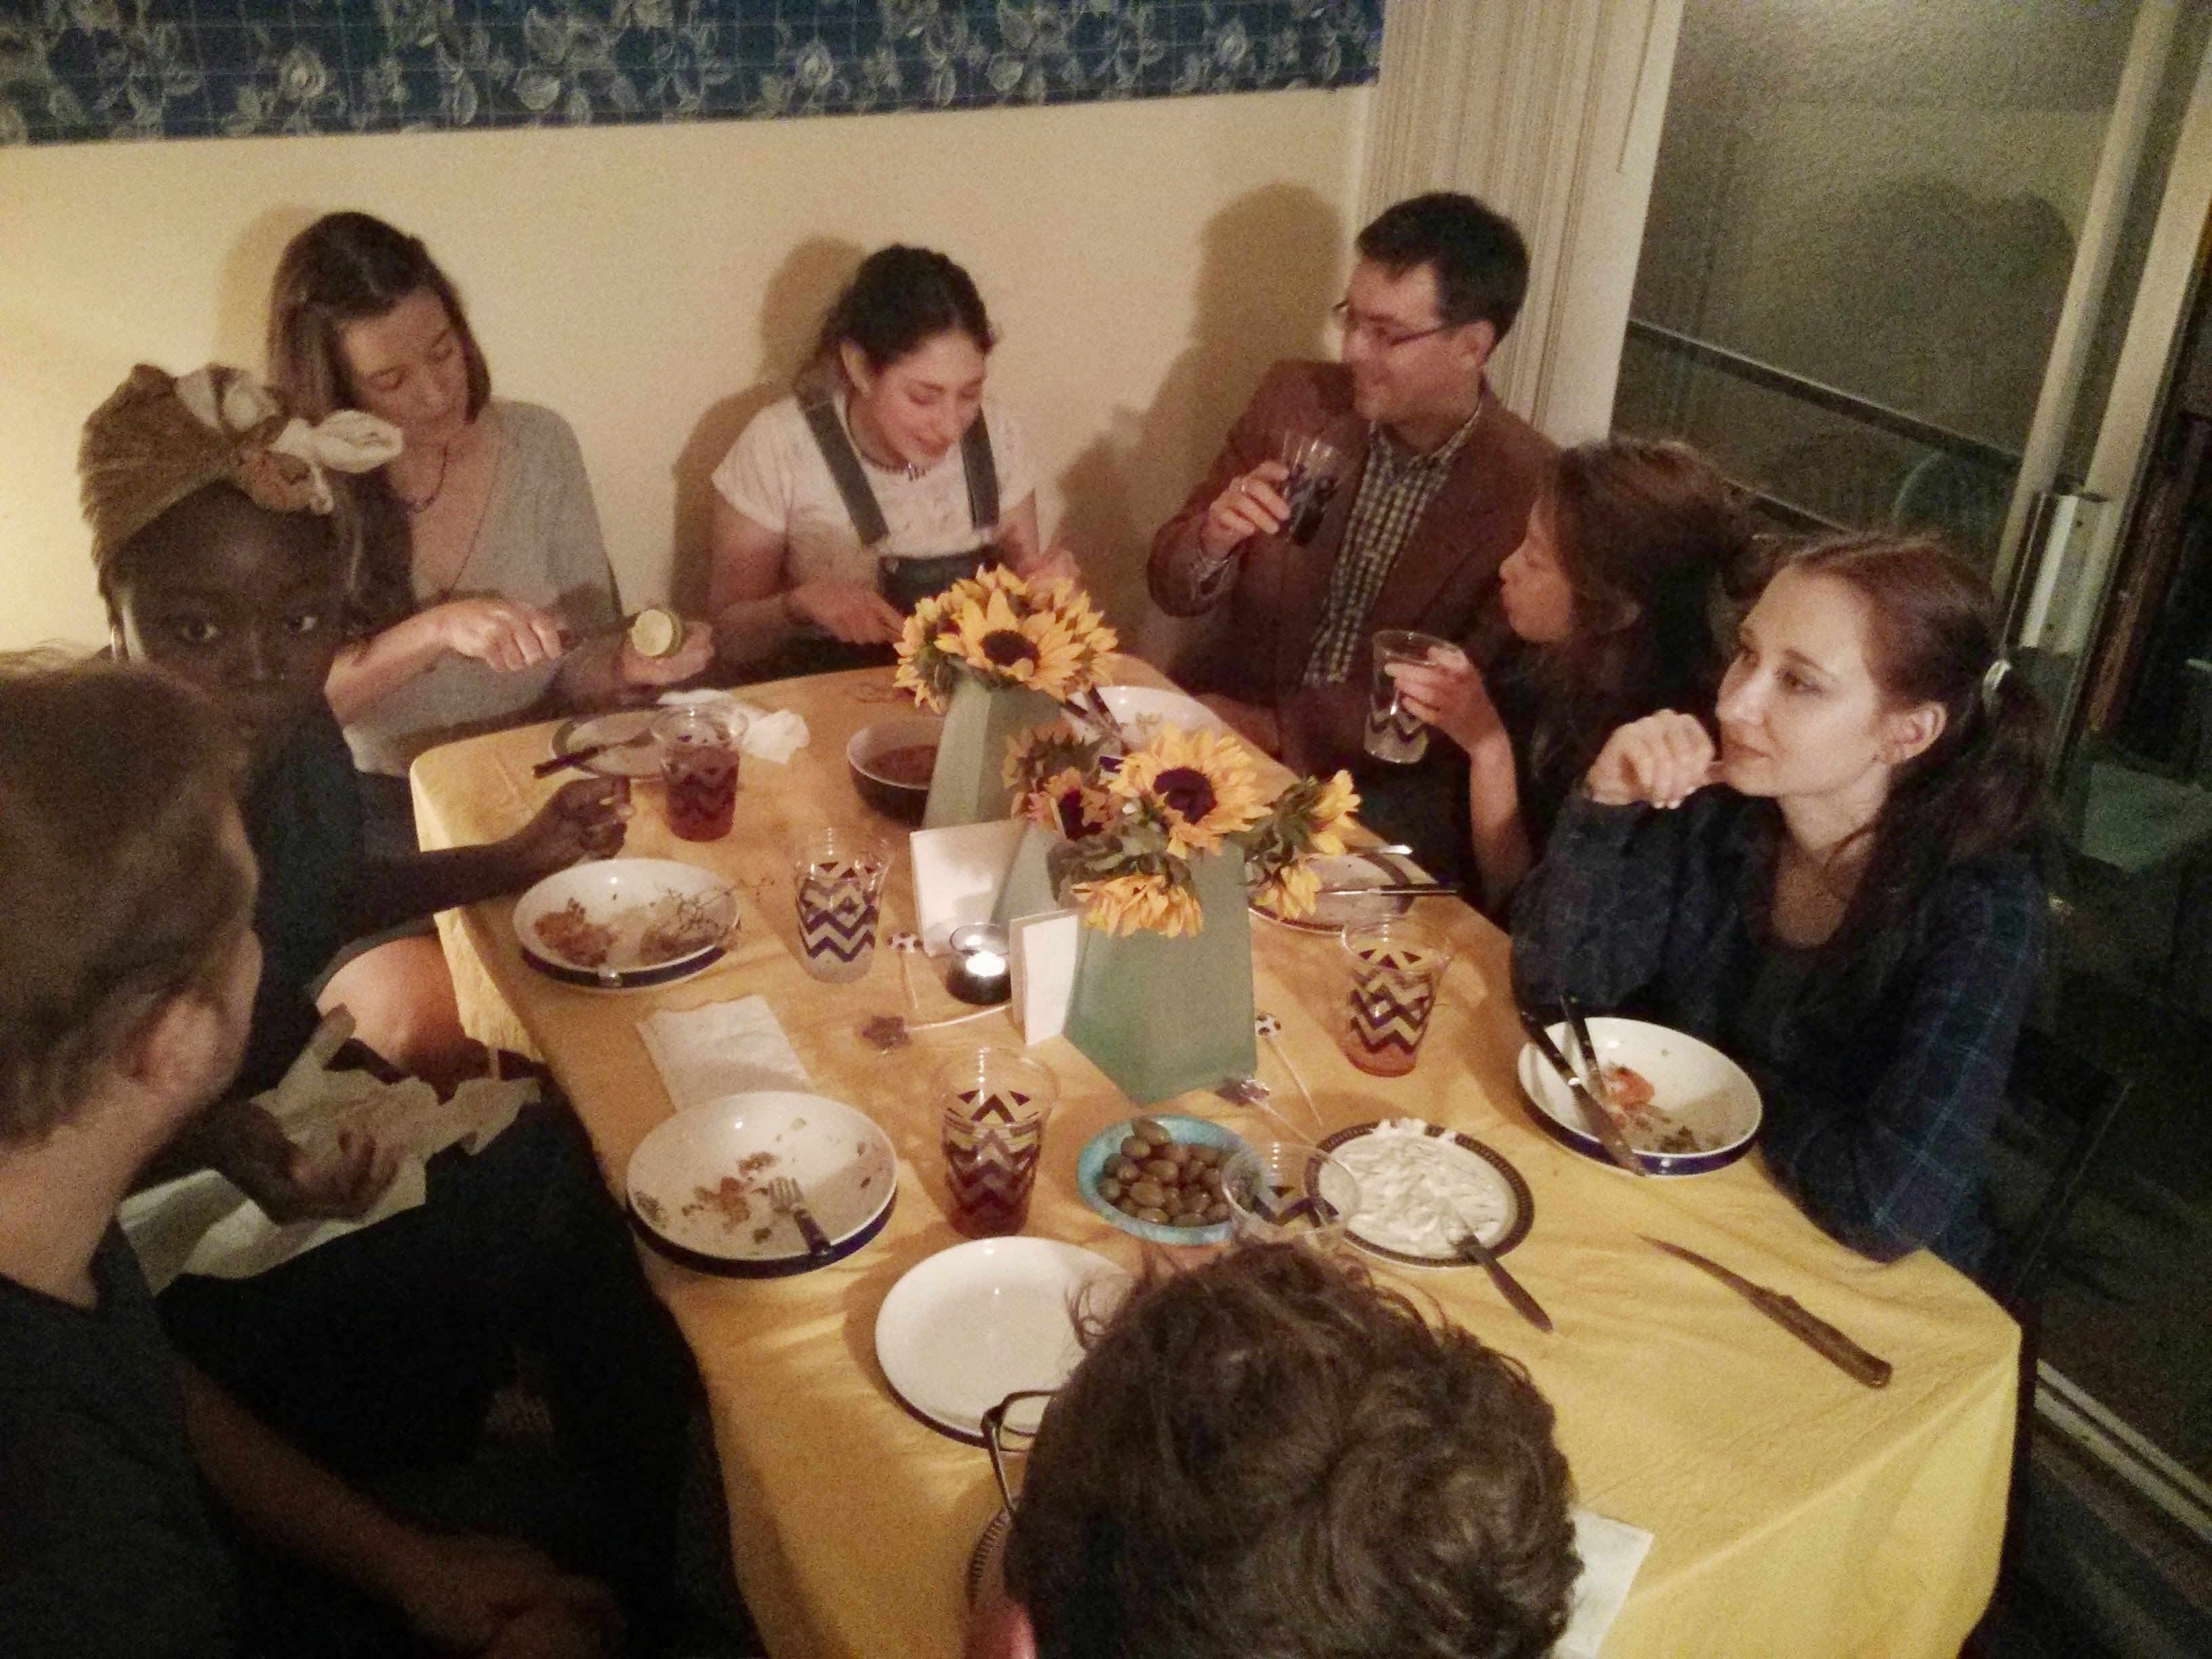 first year graduate students eating dinner in a home environment hosted by second year students. sunflower and yellow decorations.